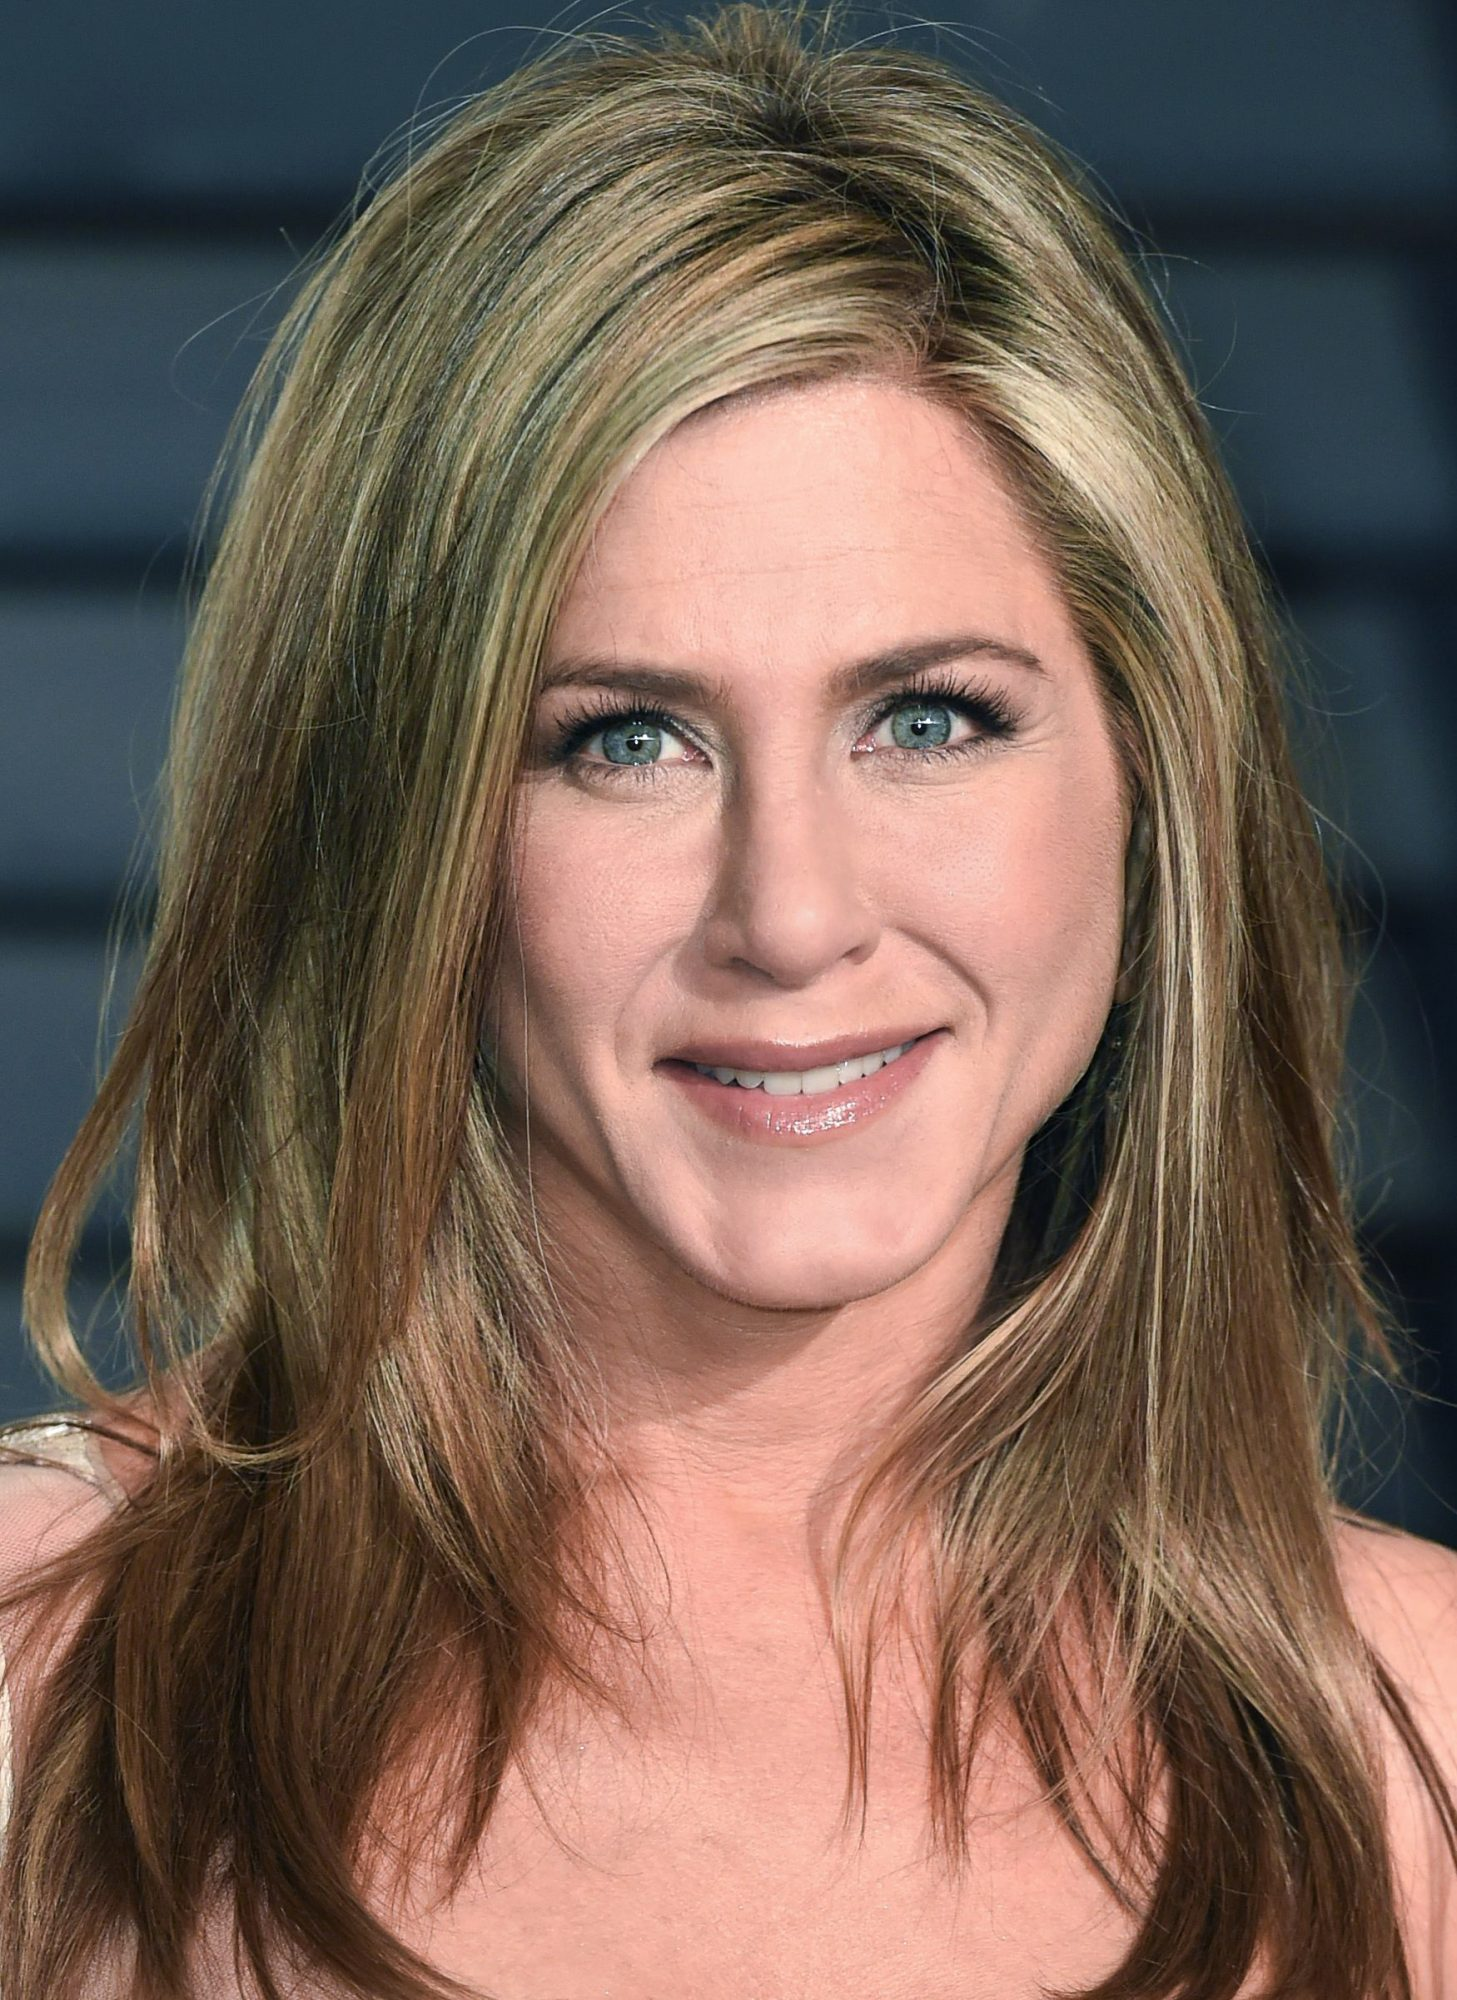 A Confused Jennifer Aniston Sports a Bathrobe in This Hilarious Emirates Airline Commercial